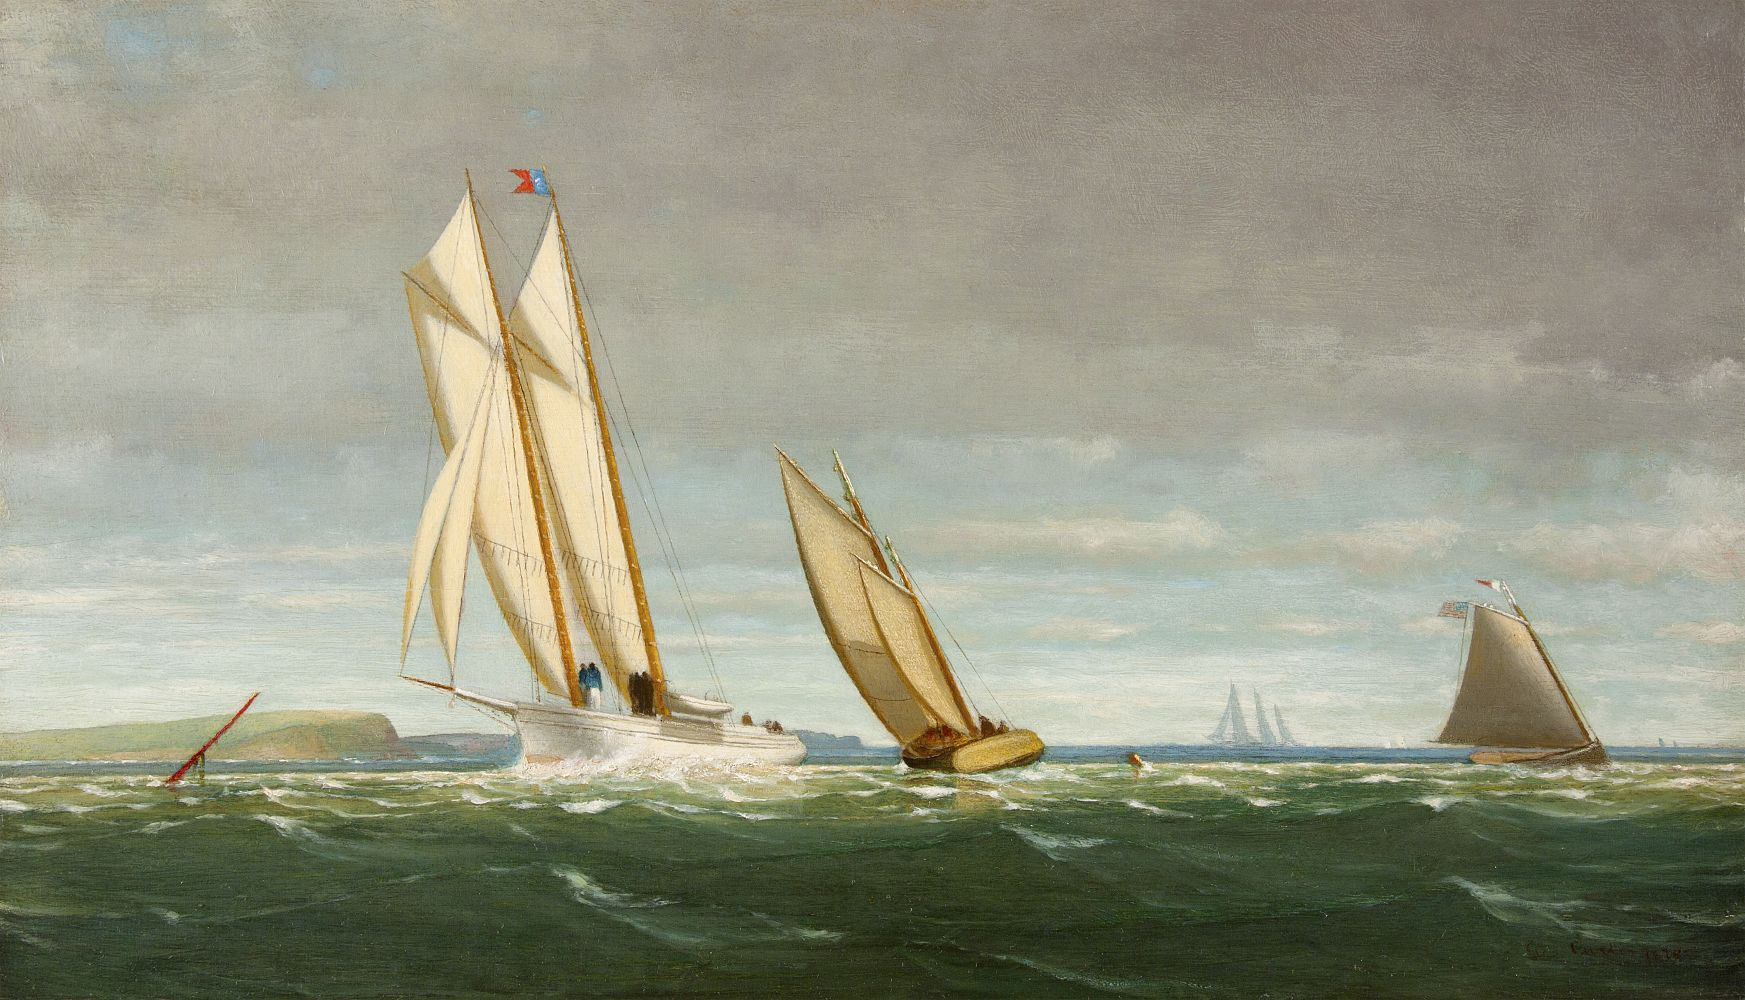 George Curtis (1816–1881), Sailing off the Coast, 1878, oil on panel, 11 ½ x 20 in., signed and dated lower right: Geo. Curtis 1878